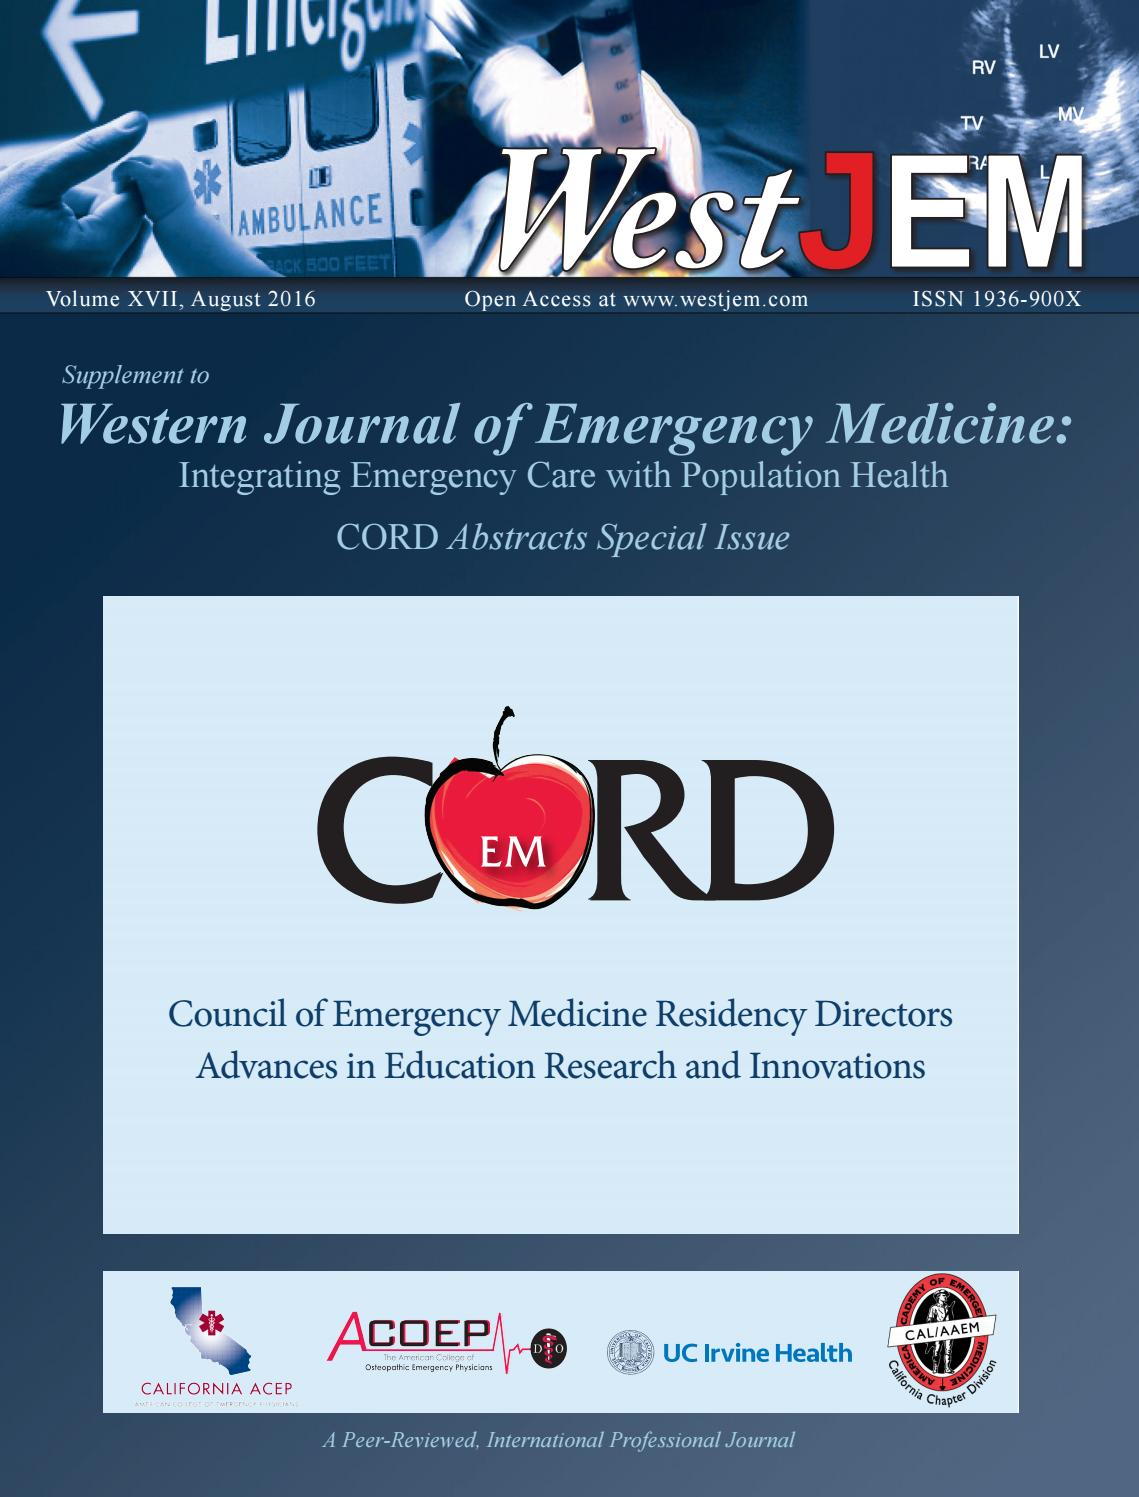 Volume 17 issue 4 supplement cord advances in education research volume 17 issue 4 supplement cord advances in education research and innovations by western journal of emergency medicine issuu malvernweather Images